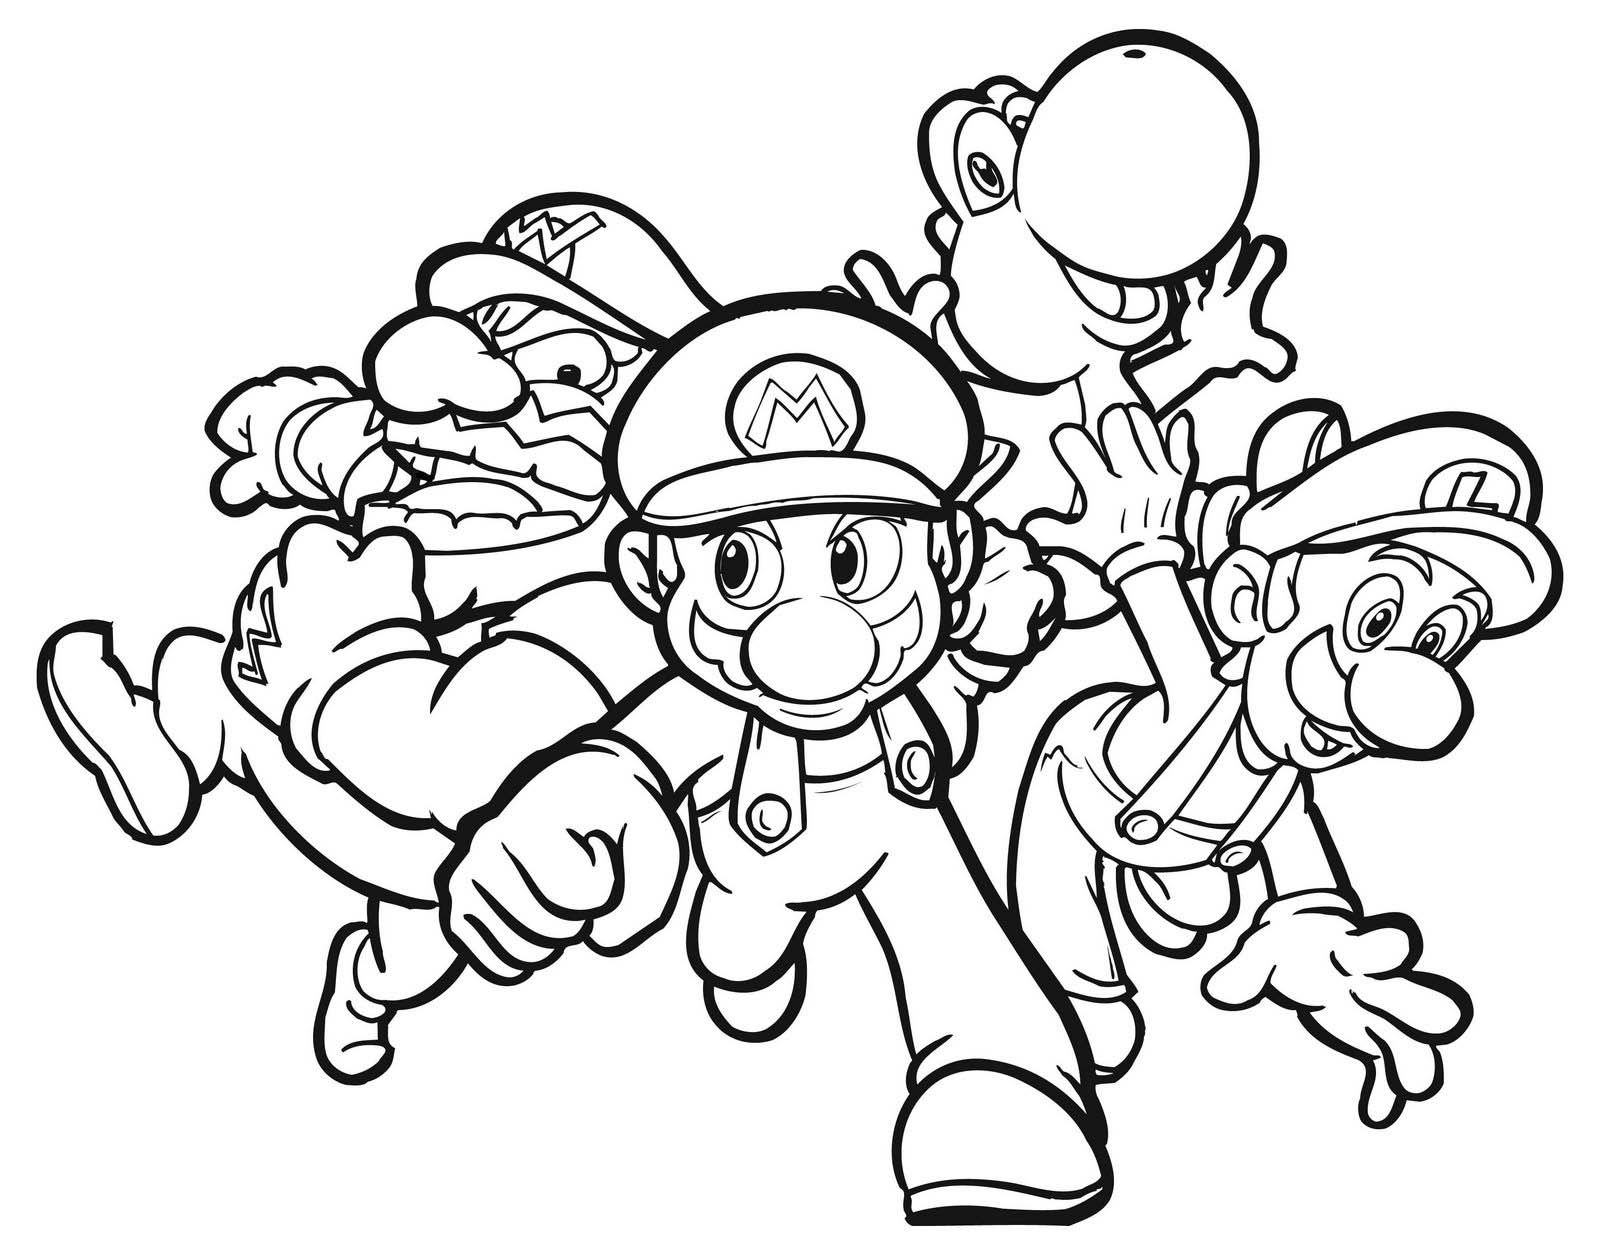 Free printable coloring pages of mario and luigi free printable coloring pages of mario characters free printable coloring pages of mario brothers